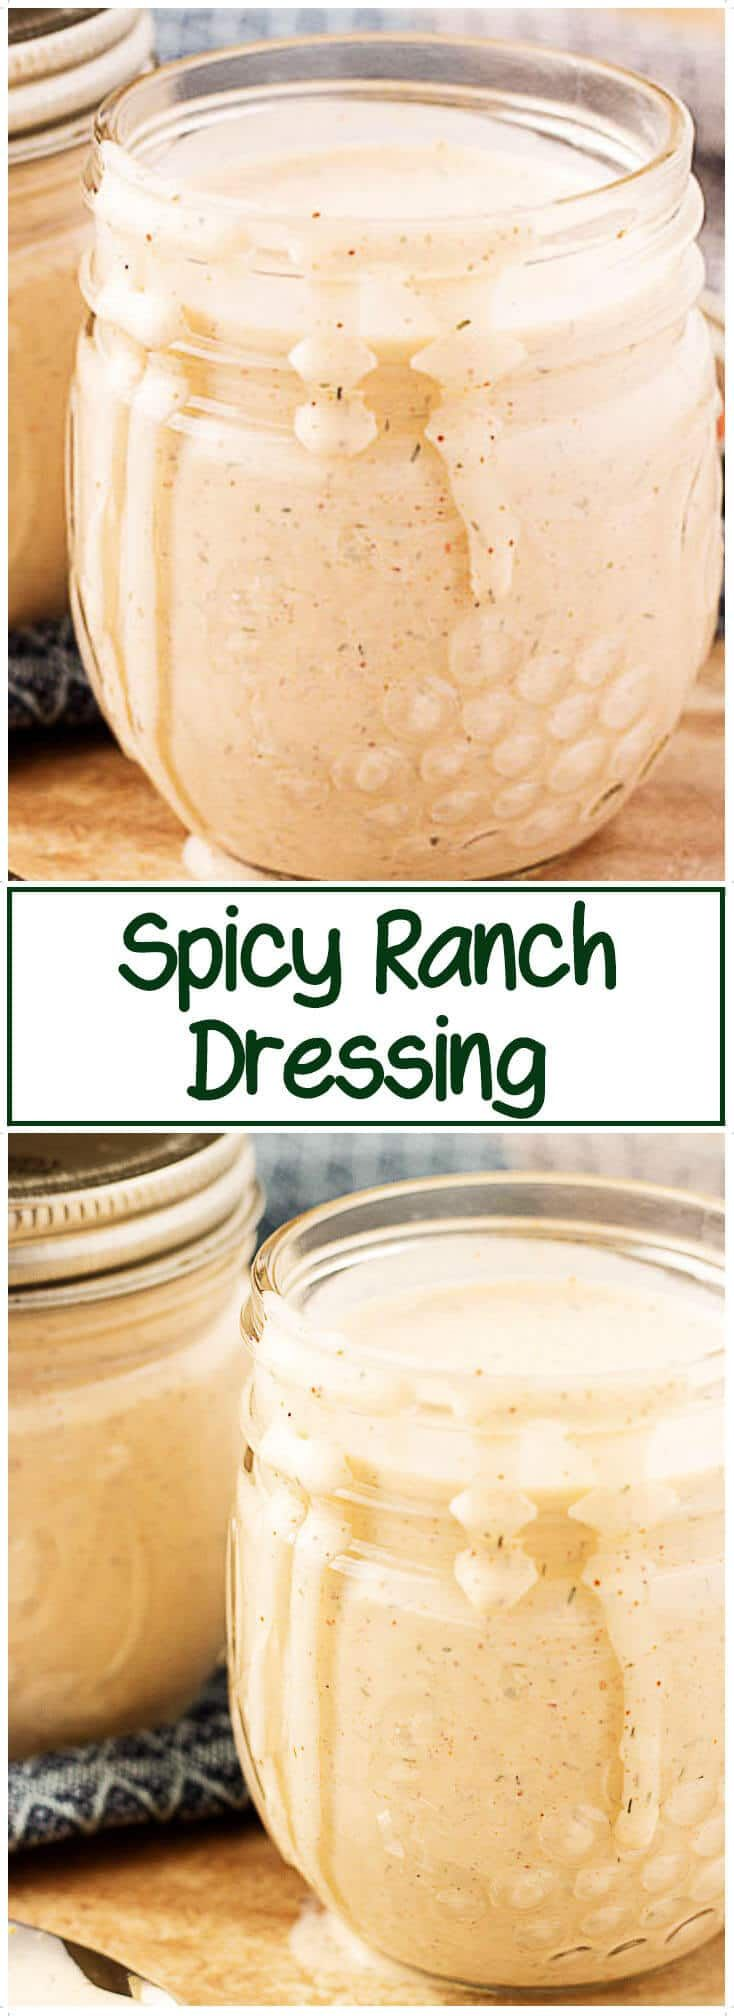 Spicy Ranch Dressing is easy to make and has hints of cayenne, dill, chipotle, and garlic coupled with the creaminess of buttermilk. #ranch #spicy #dressing via @berlyskitchen